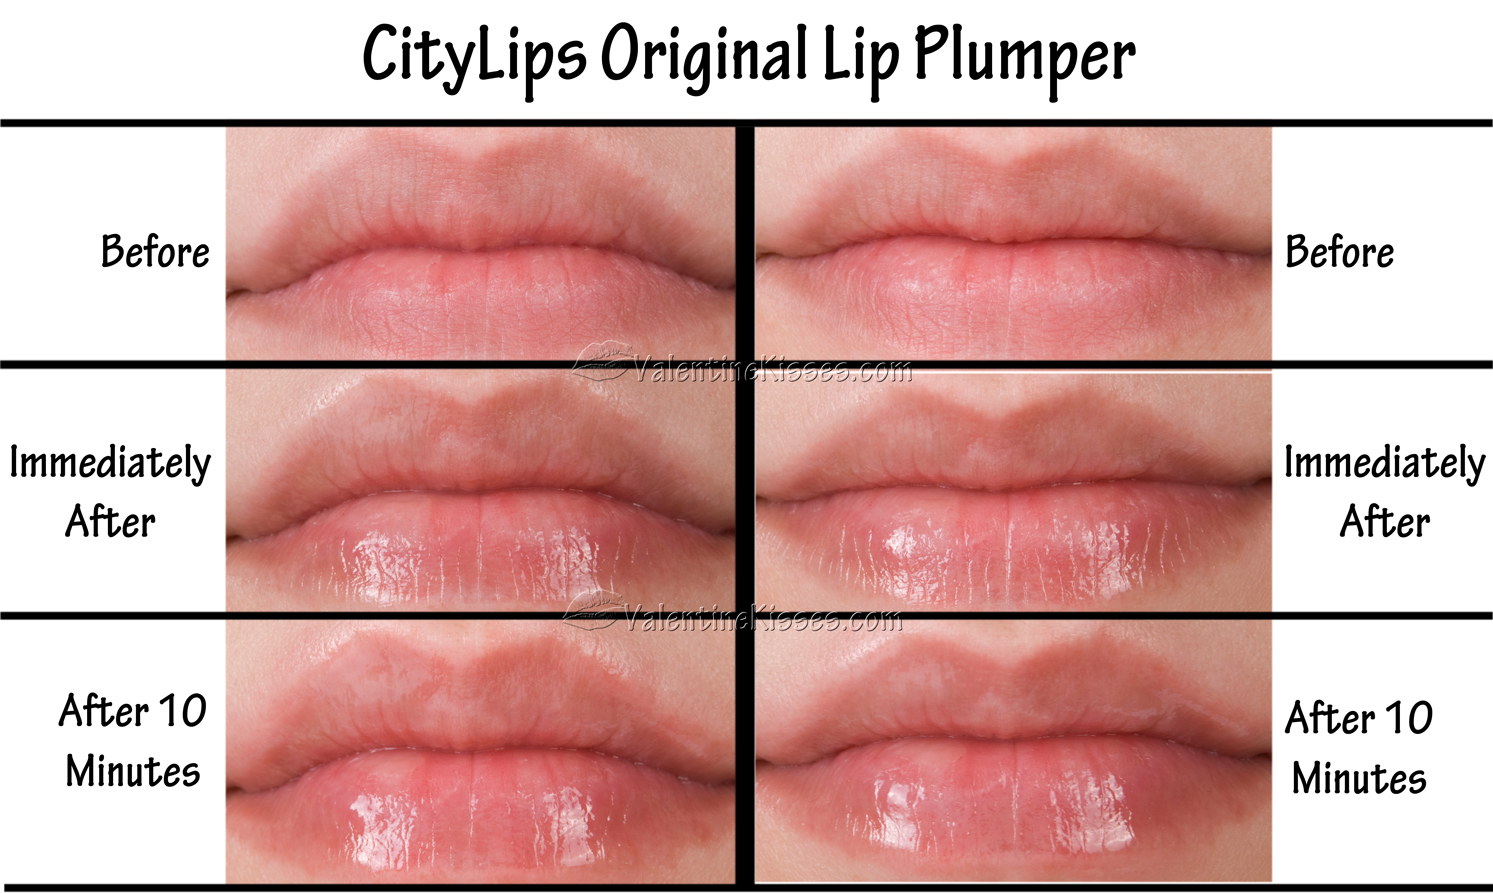 What is City Lips?